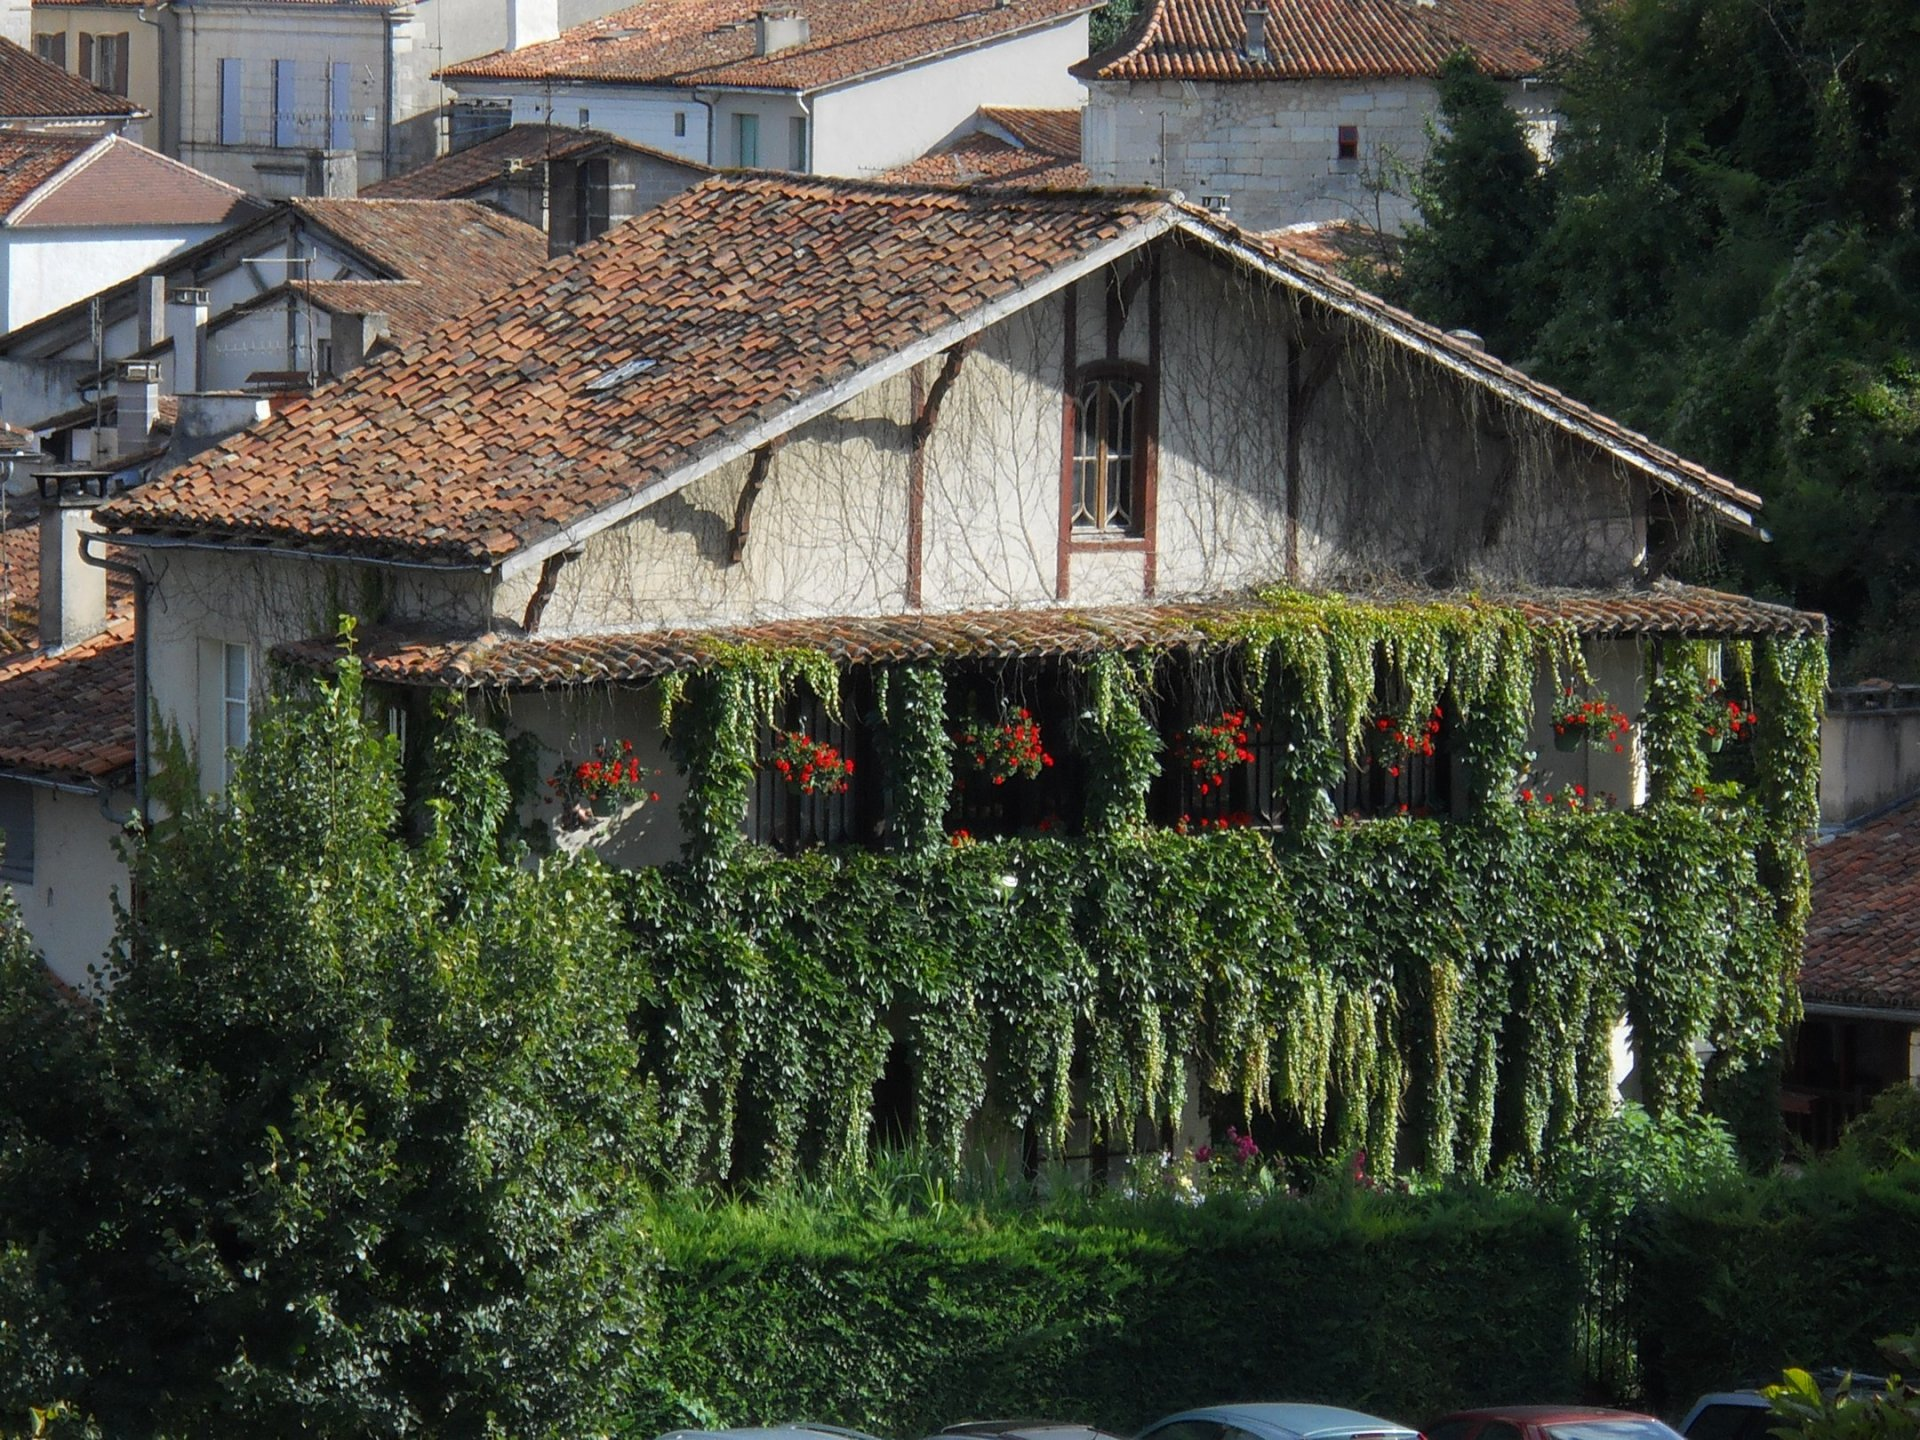 Renovated former Auberge with lovely floral balconies